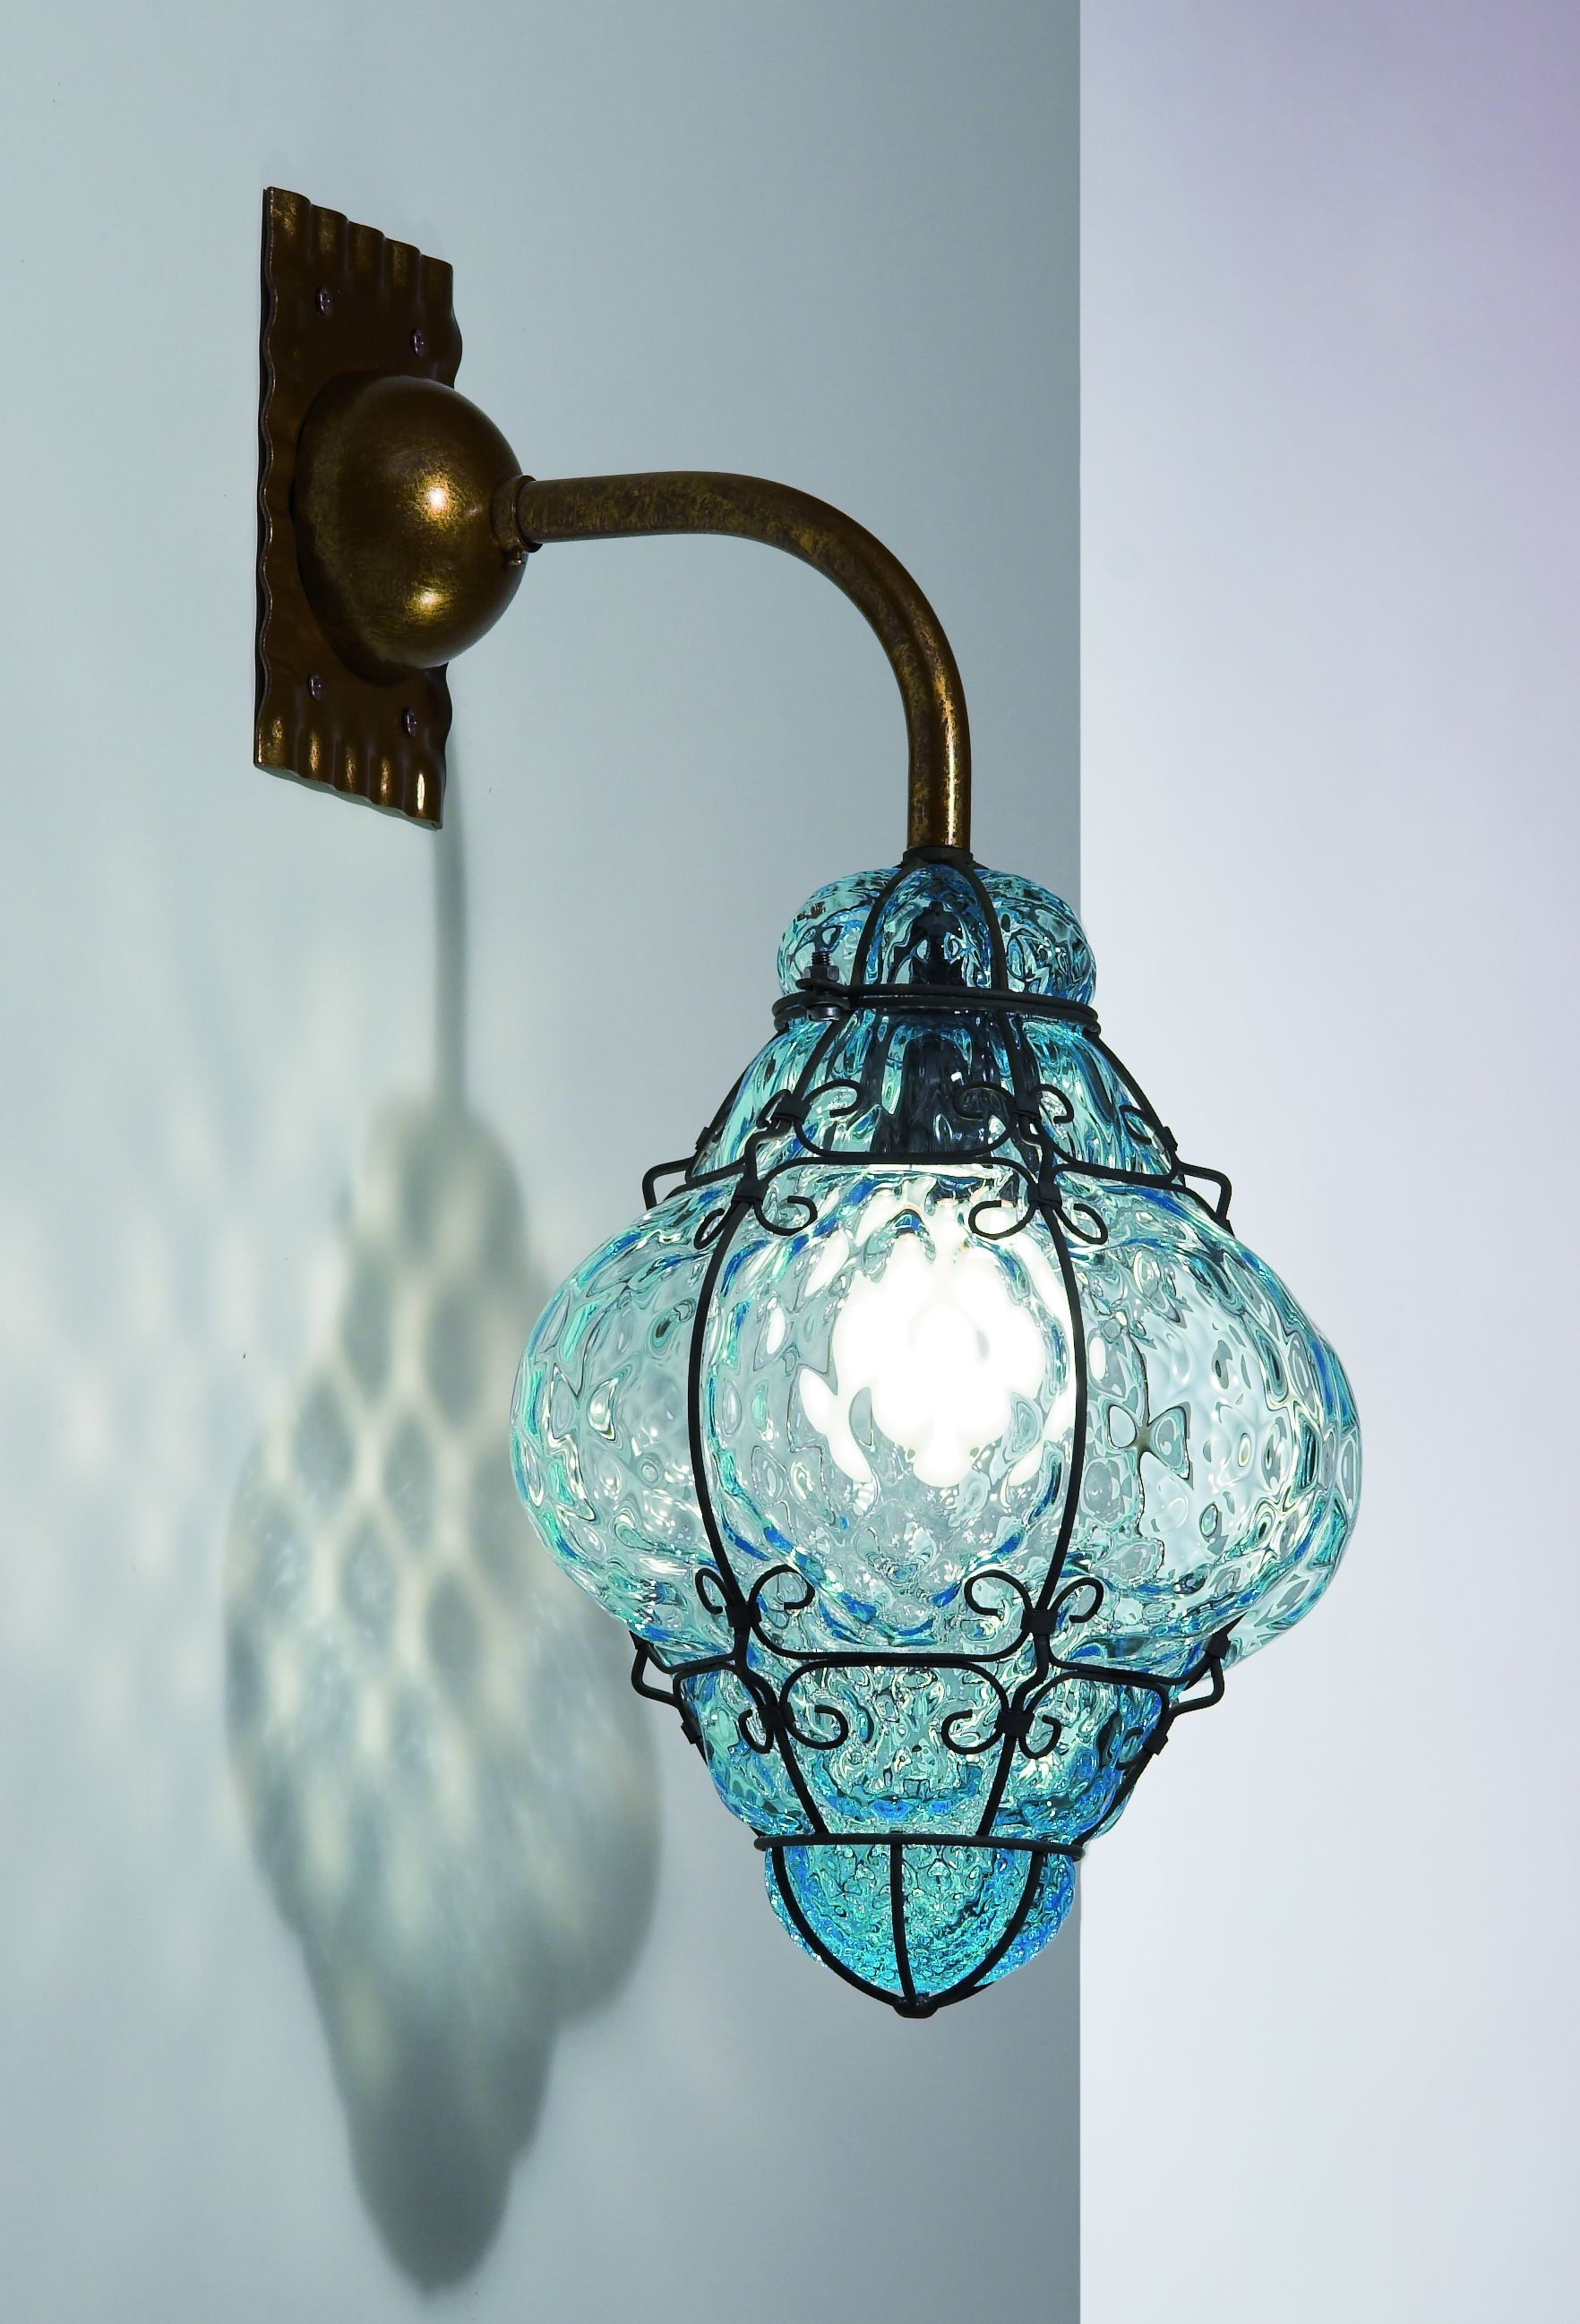 A beautiful clic blue, amber or clear Murano gl wall lantern ... on blue garden ideas, blue wallpaper ideas, blue landscaping ideas,